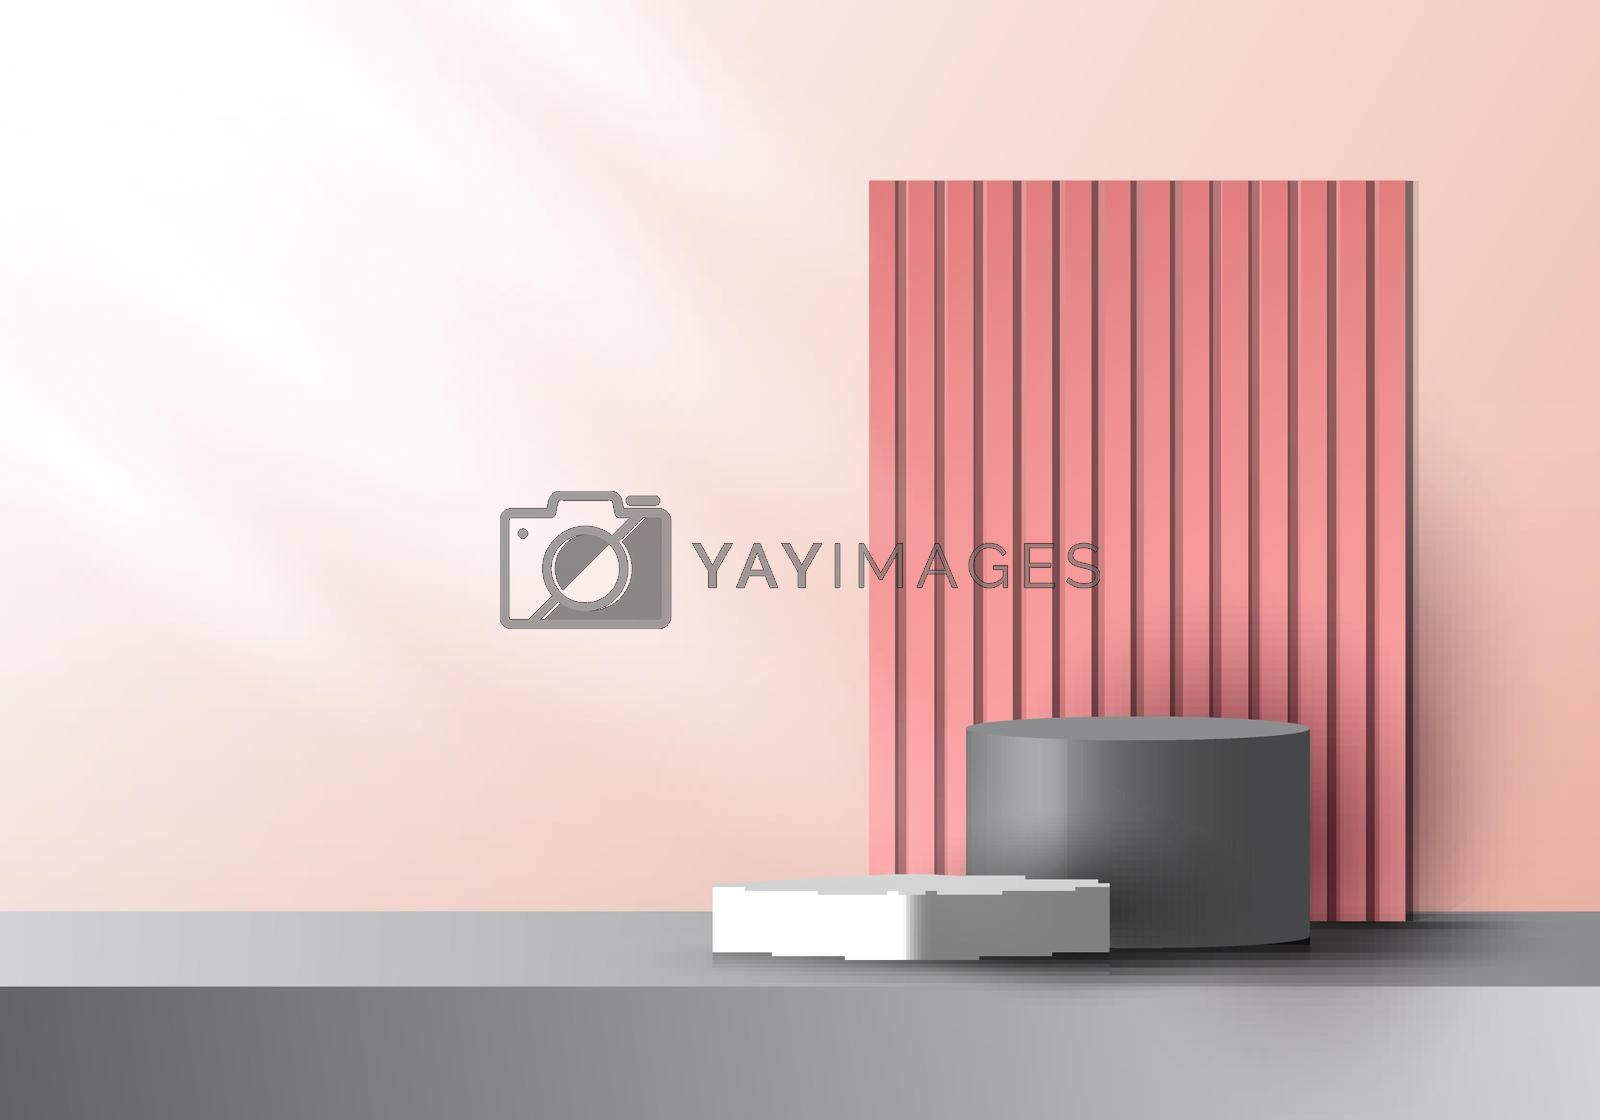 Royalty free image of 3D realistic pink and gray color geometric platform and battens backdrop with side lighting mockup minimal scene background by phochi